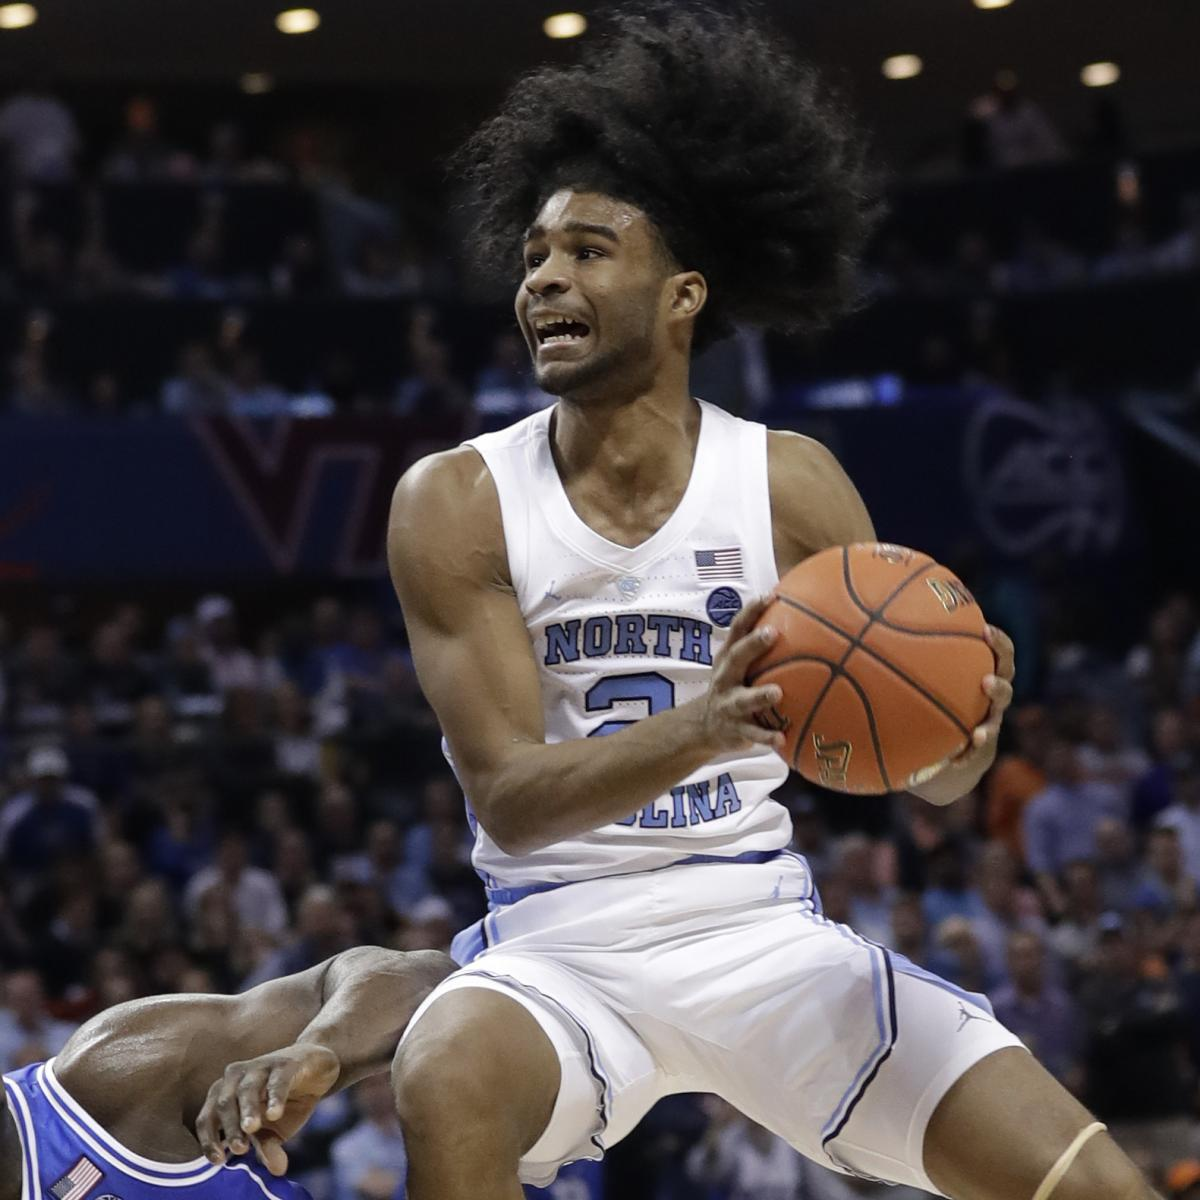 2019 NBA Draft Big Board: Ranking the Top 75 Players in This